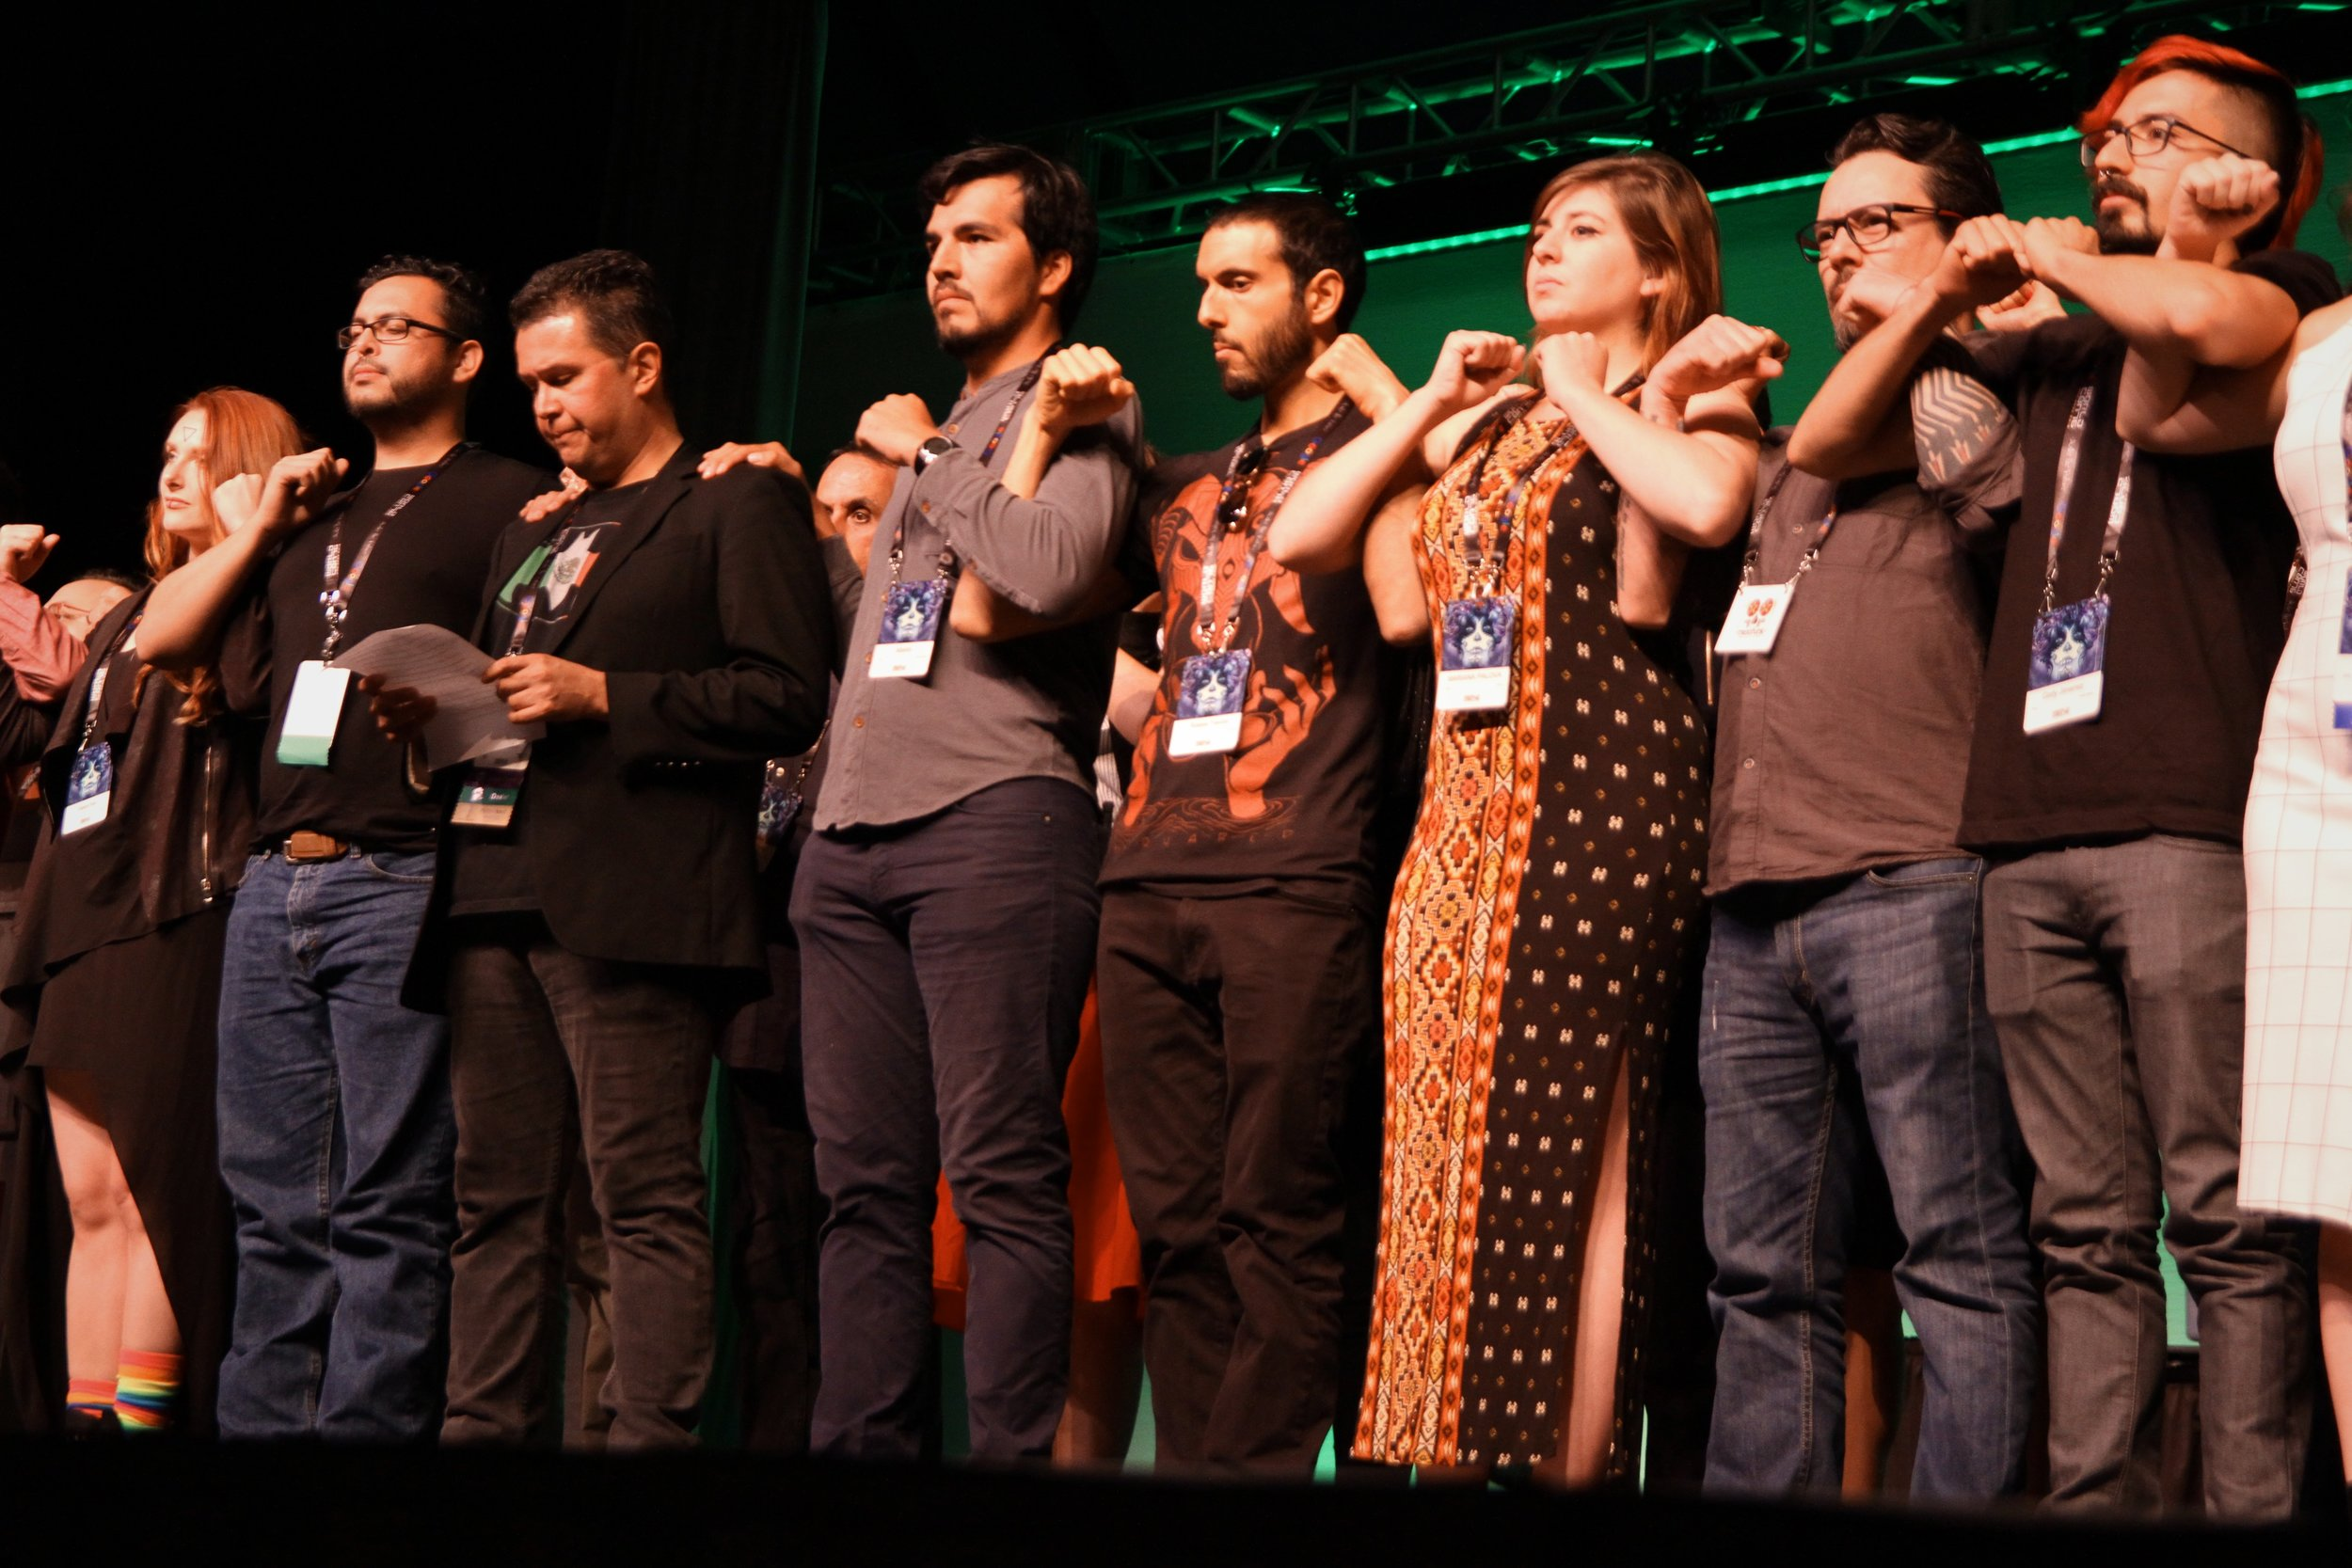 Mexicanx Initiative Participants standing in solidarity as John Picacio reads Lauren Snow's manifesto at Worldcon 76's opening ceremonies (Copyright 2018 Richard Canfield)